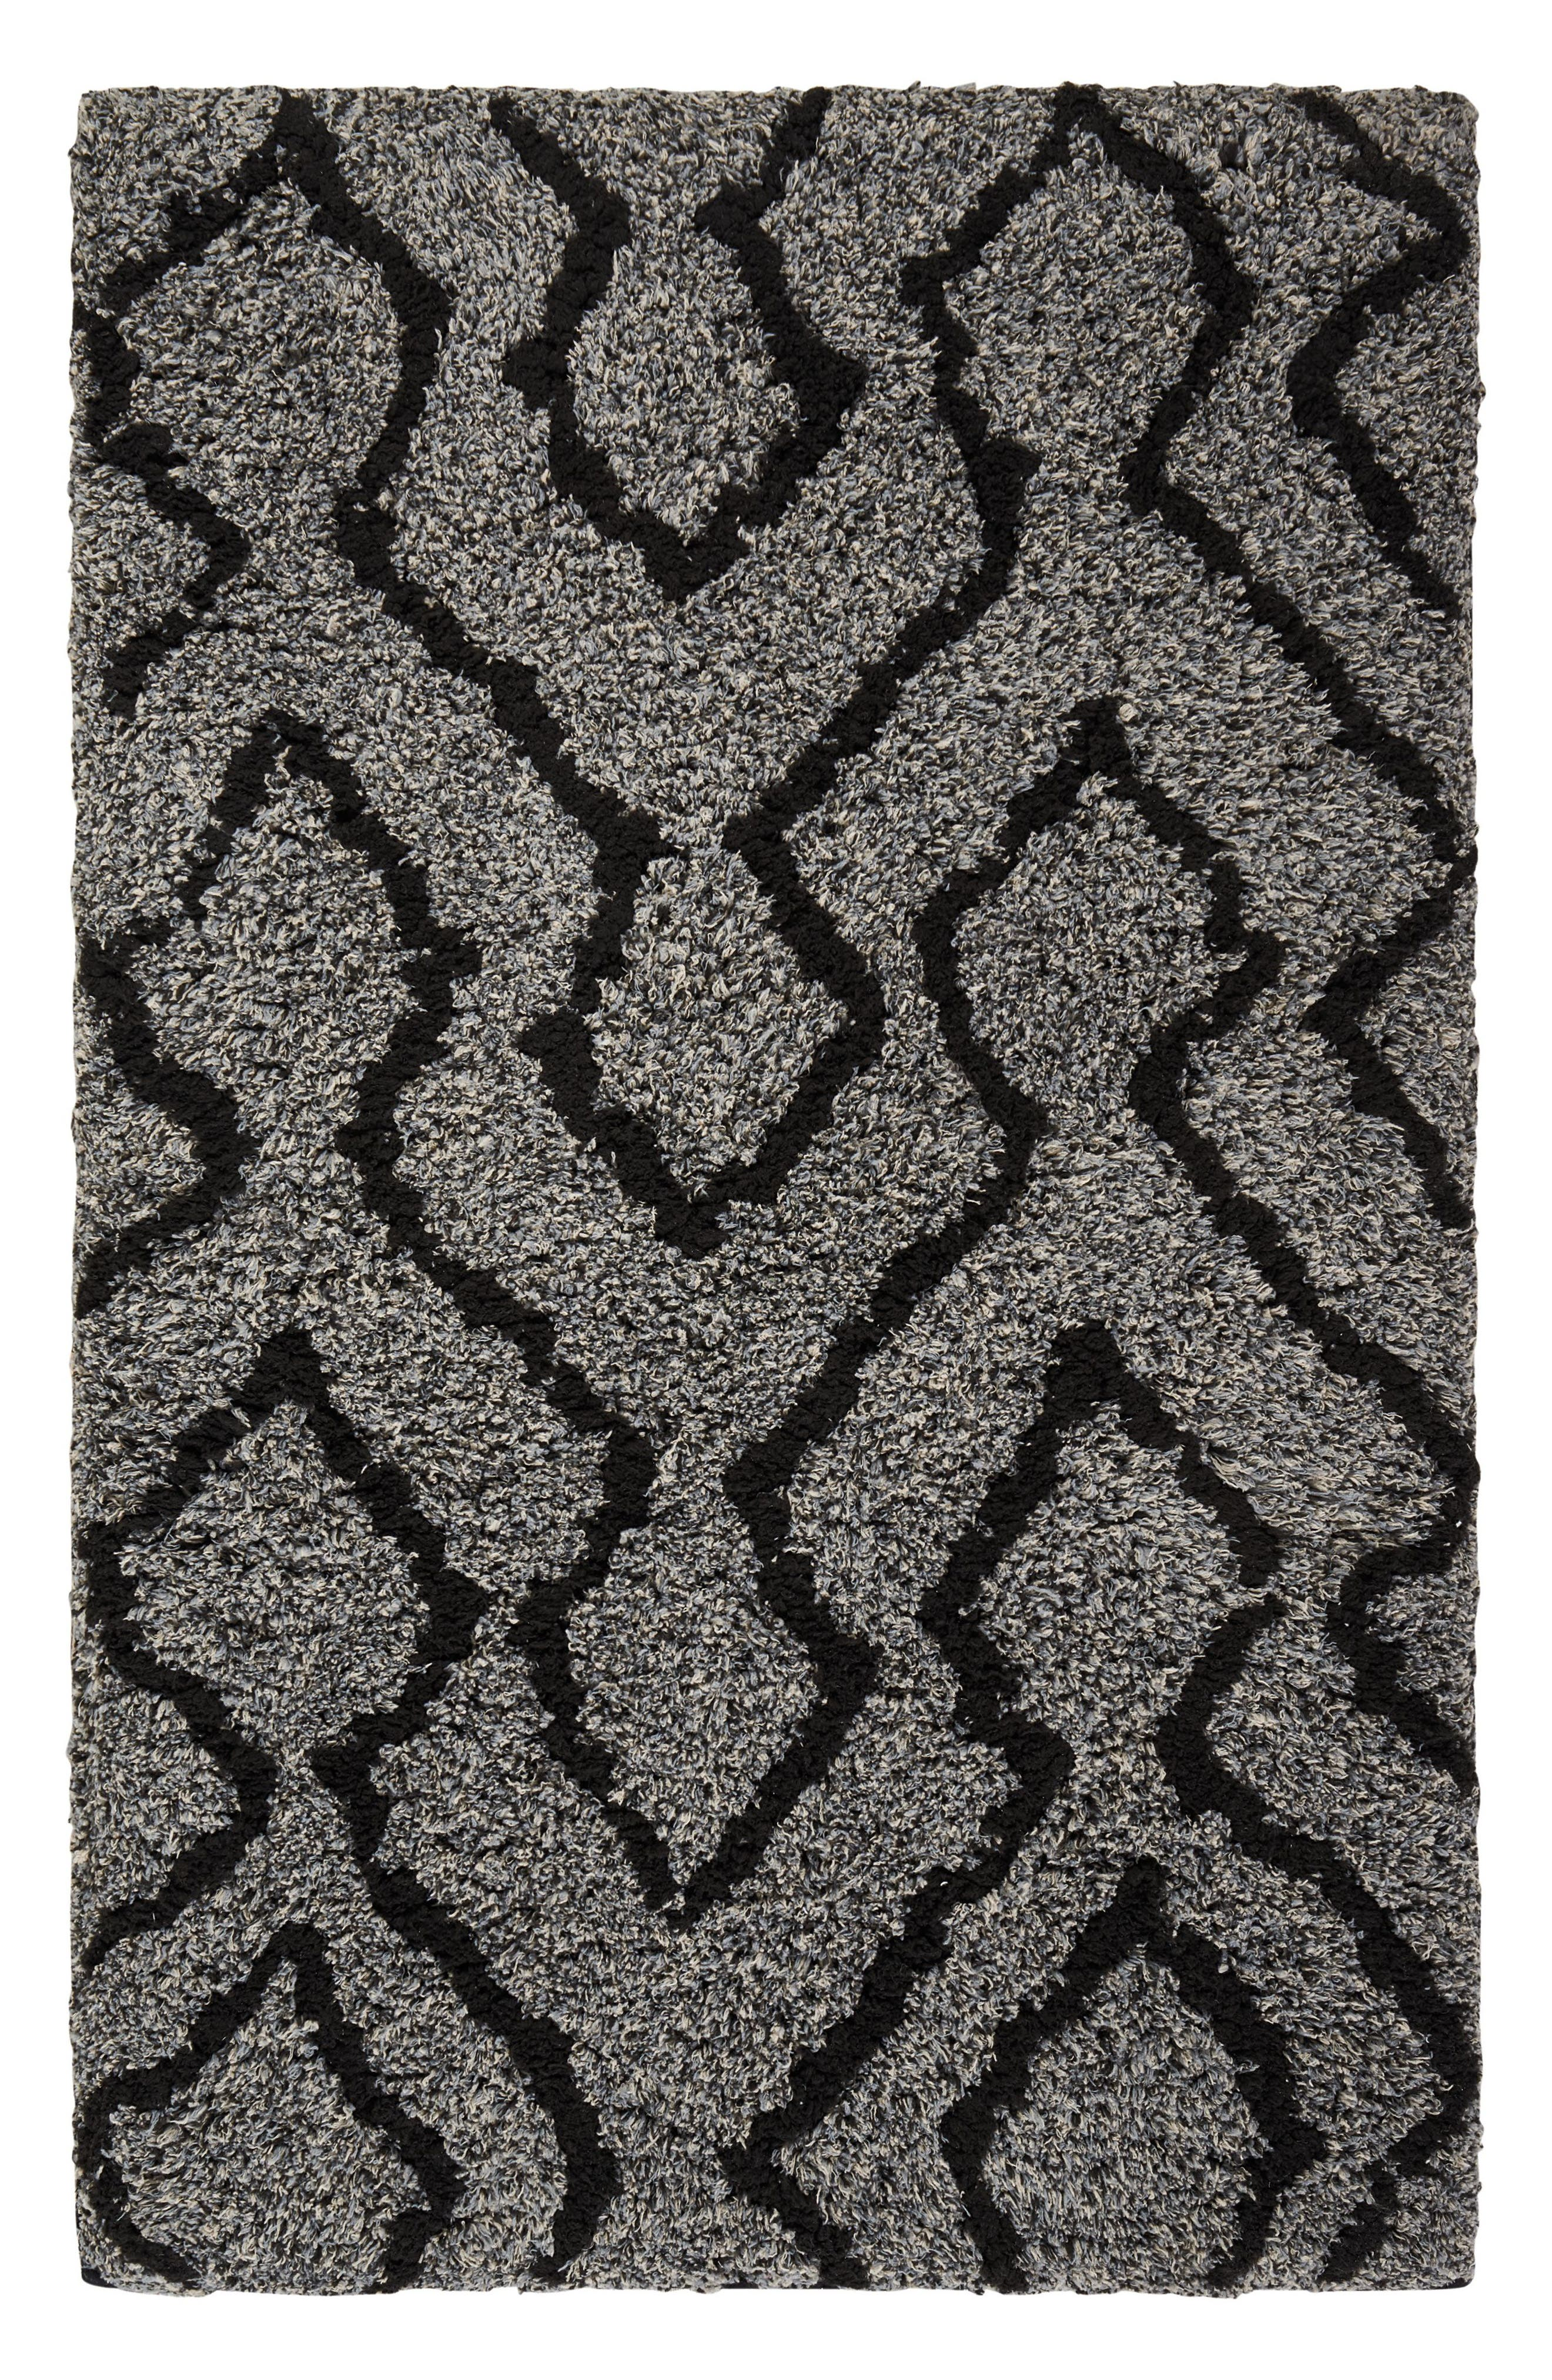 Channel Rug,                             Main thumbnail 1, color,                             020